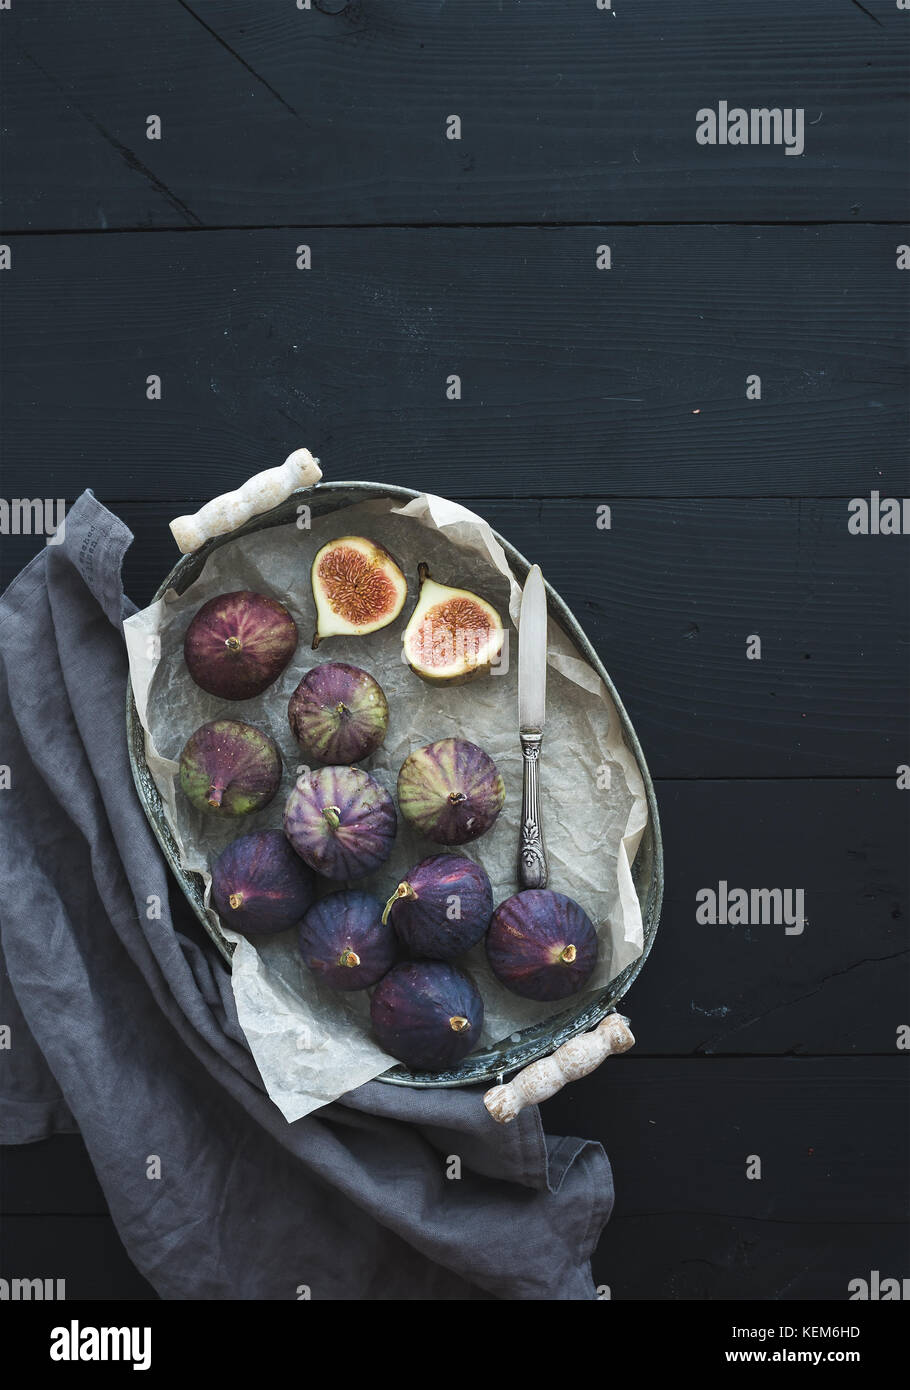 Vintage metal tray of fresh figs on dark background, top view, selective focus. - Stock Image